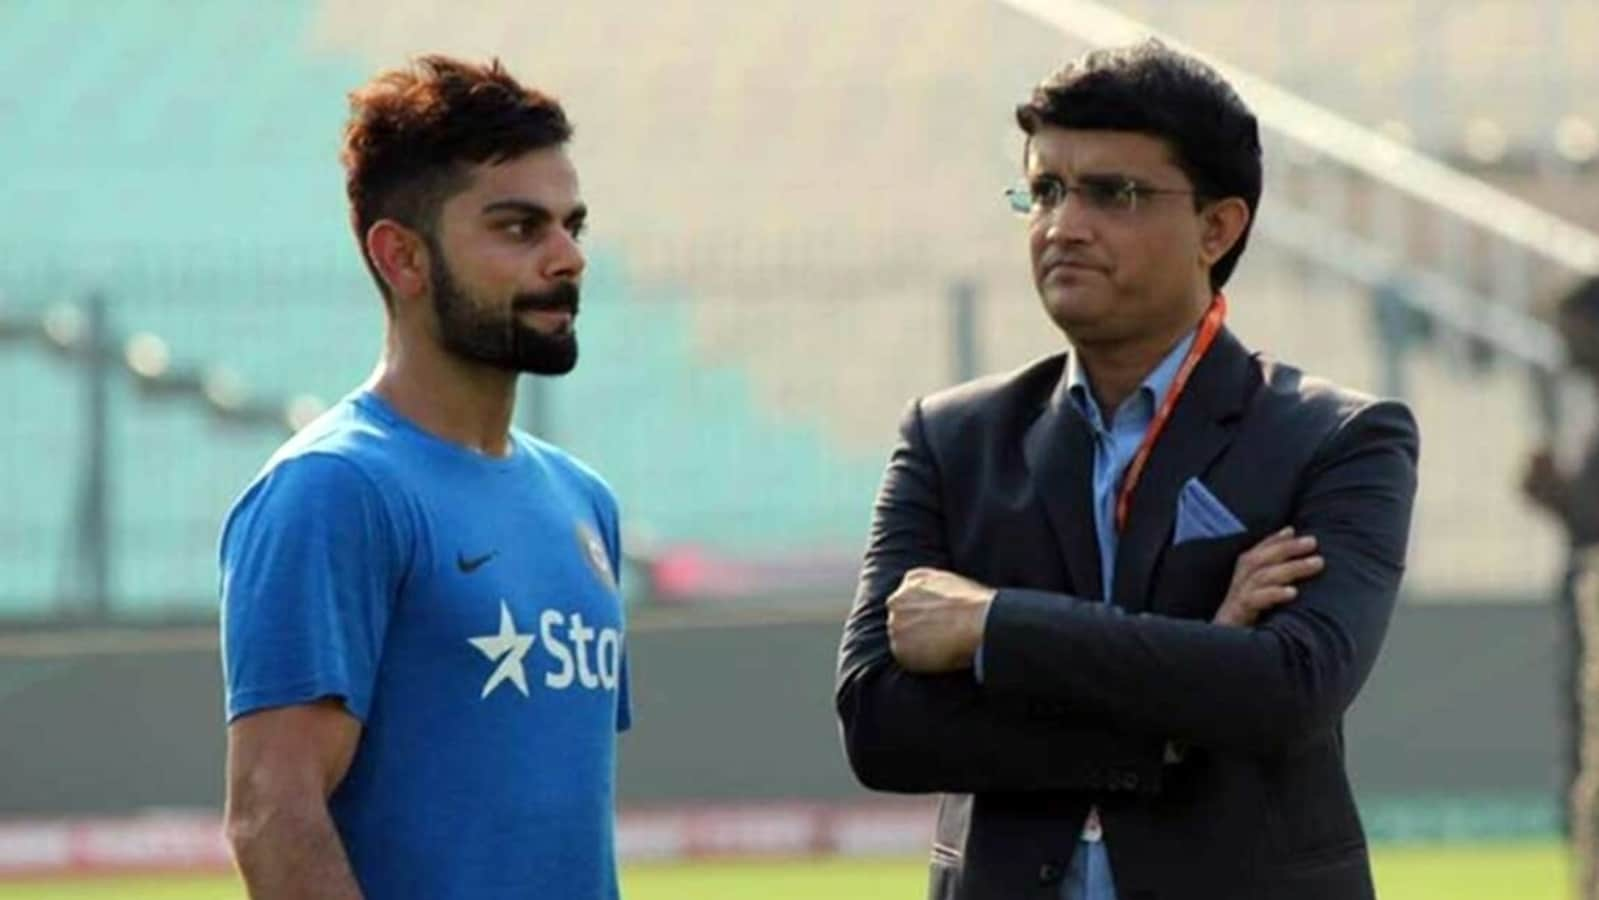 It has been made keeping future roadmap in mind': Sourav Ganguly on Virat  Kohli's decision to step down as T20 captain | Cricket - Hindustan Times